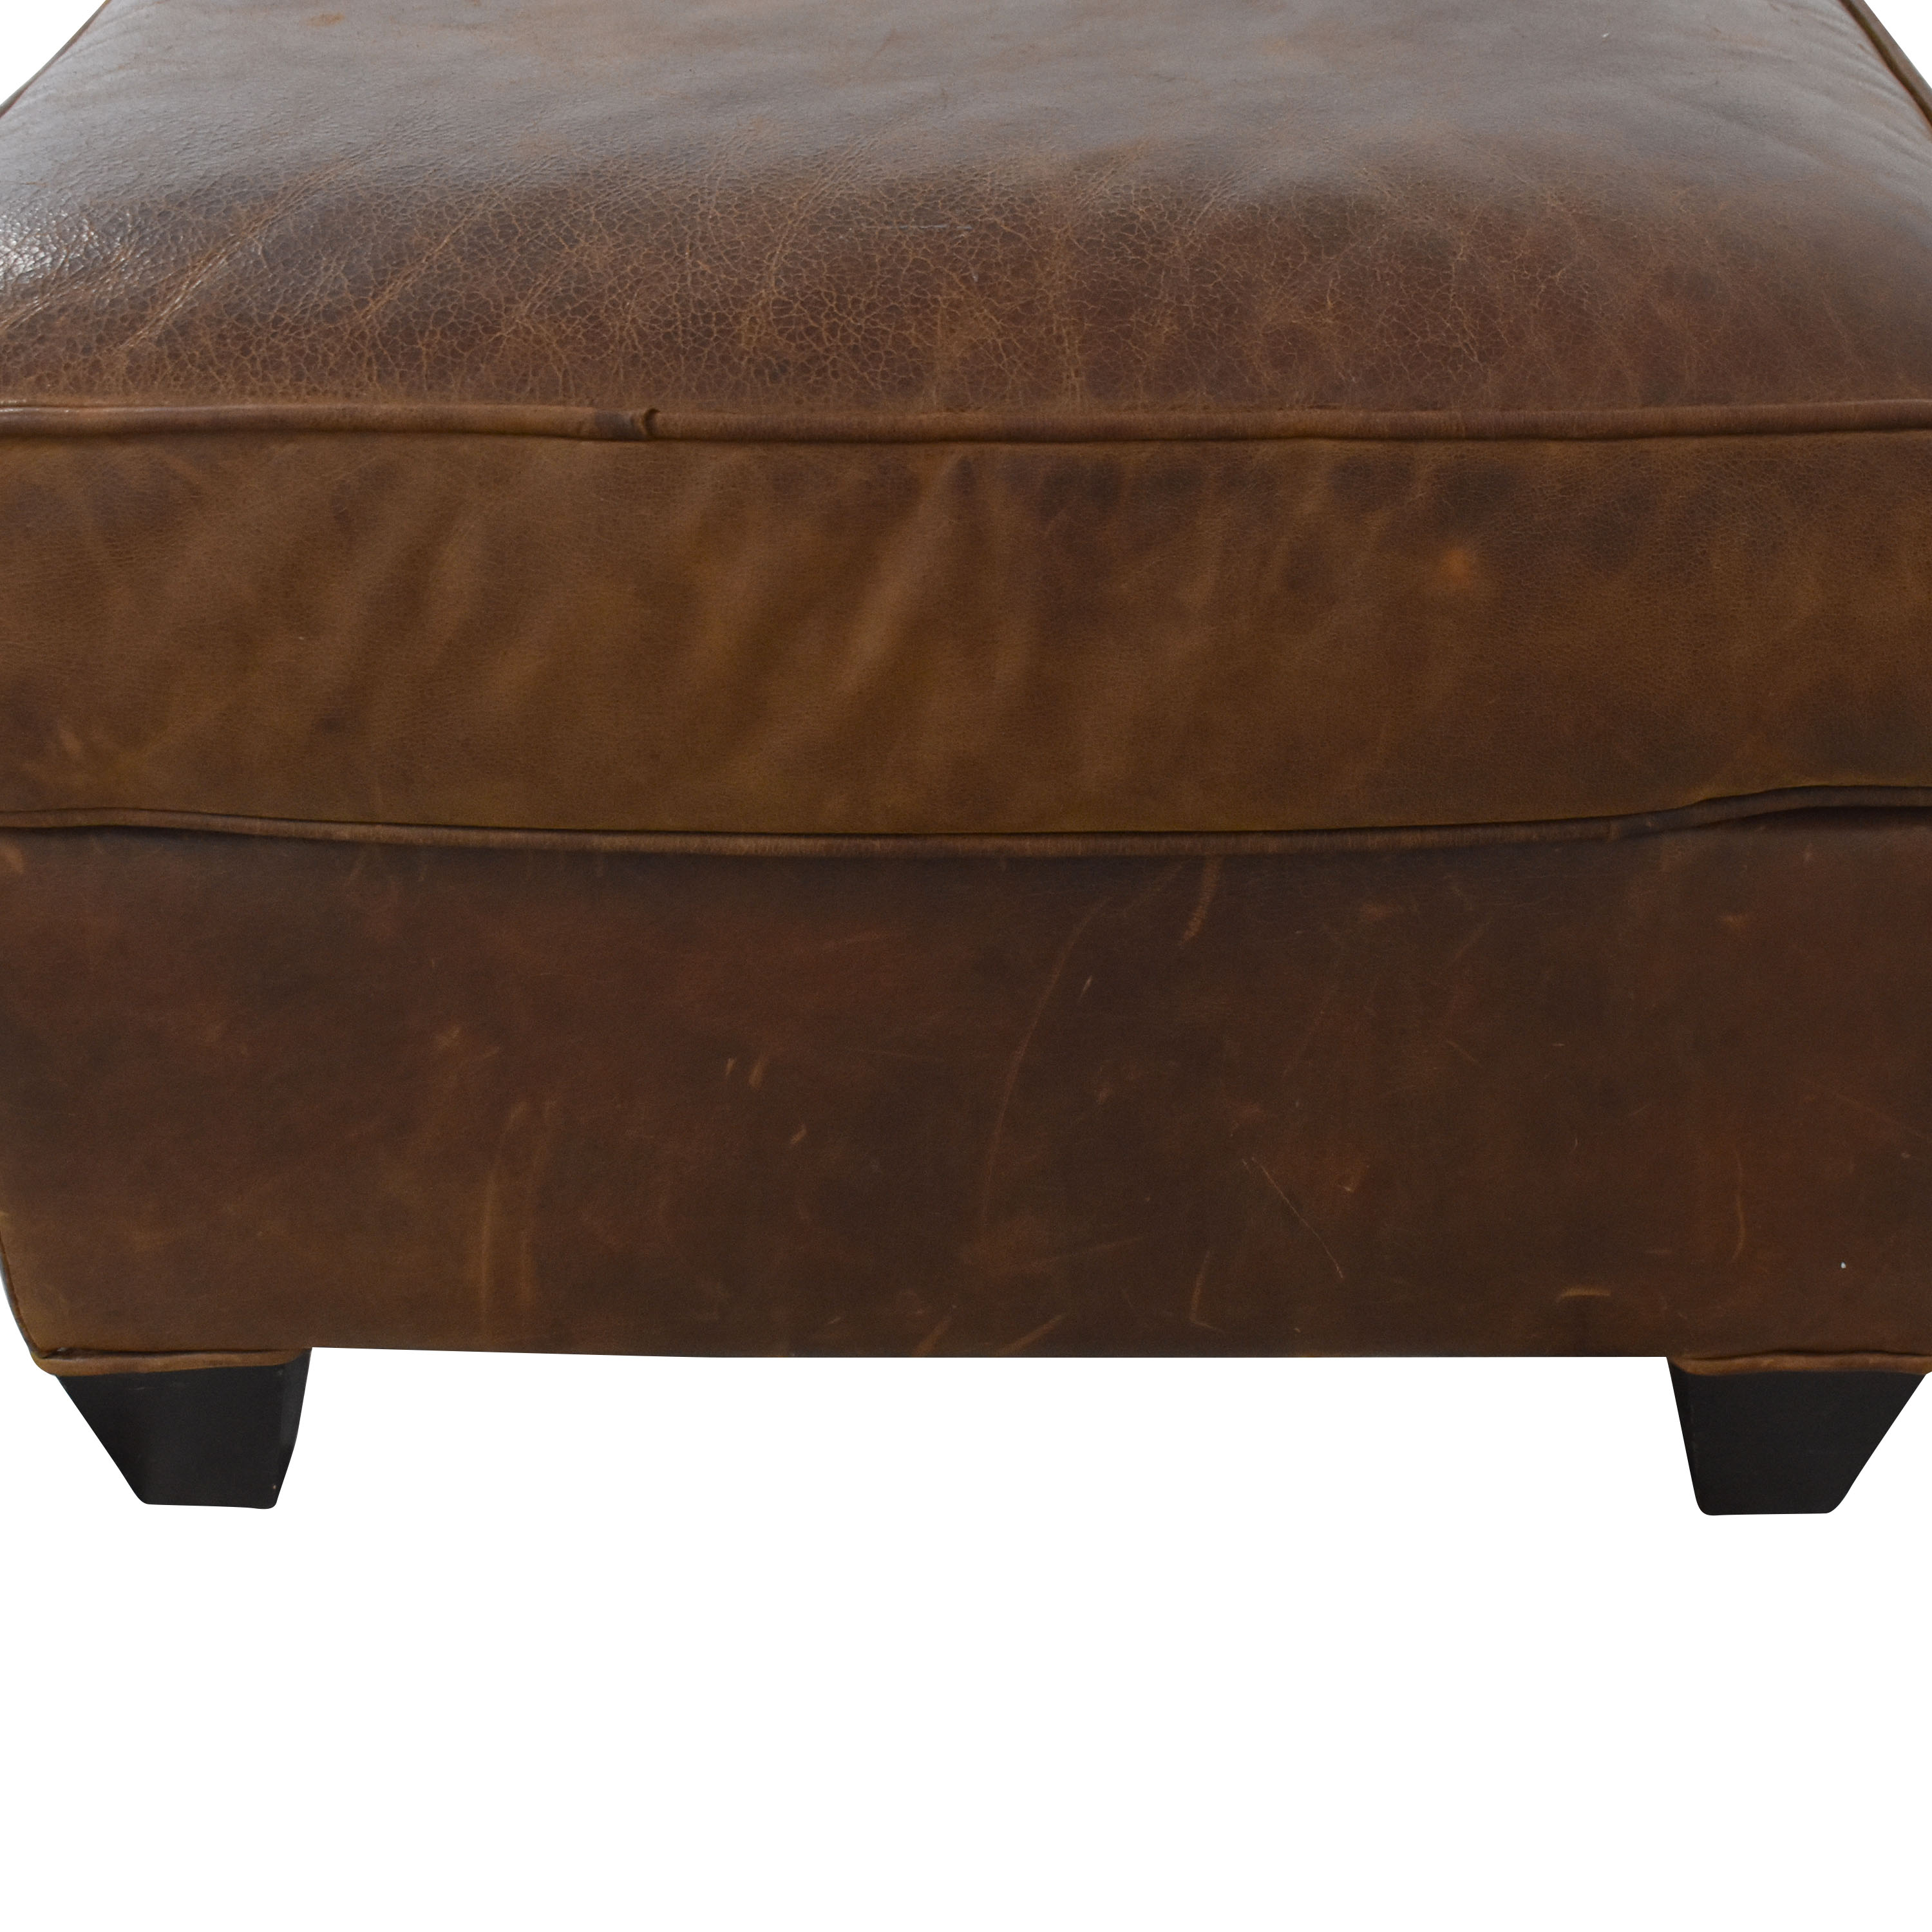 Crate & Barrel Ottoman / Chairs